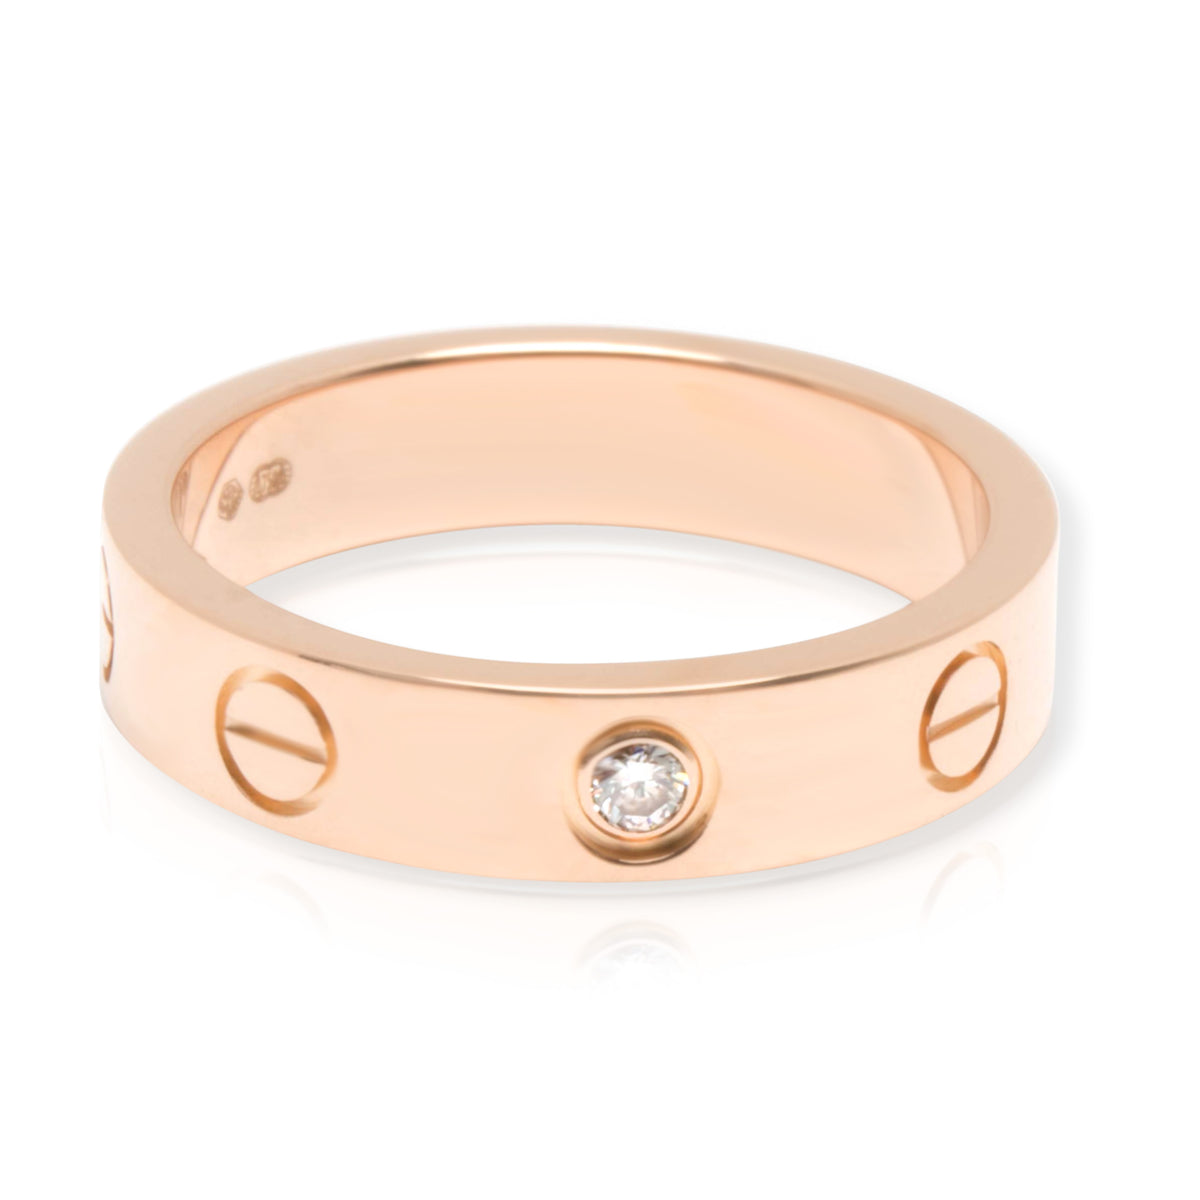 Cartier Love Diamond Wedding Band in 18KT Rose Gold 0.02ct (Size 48)